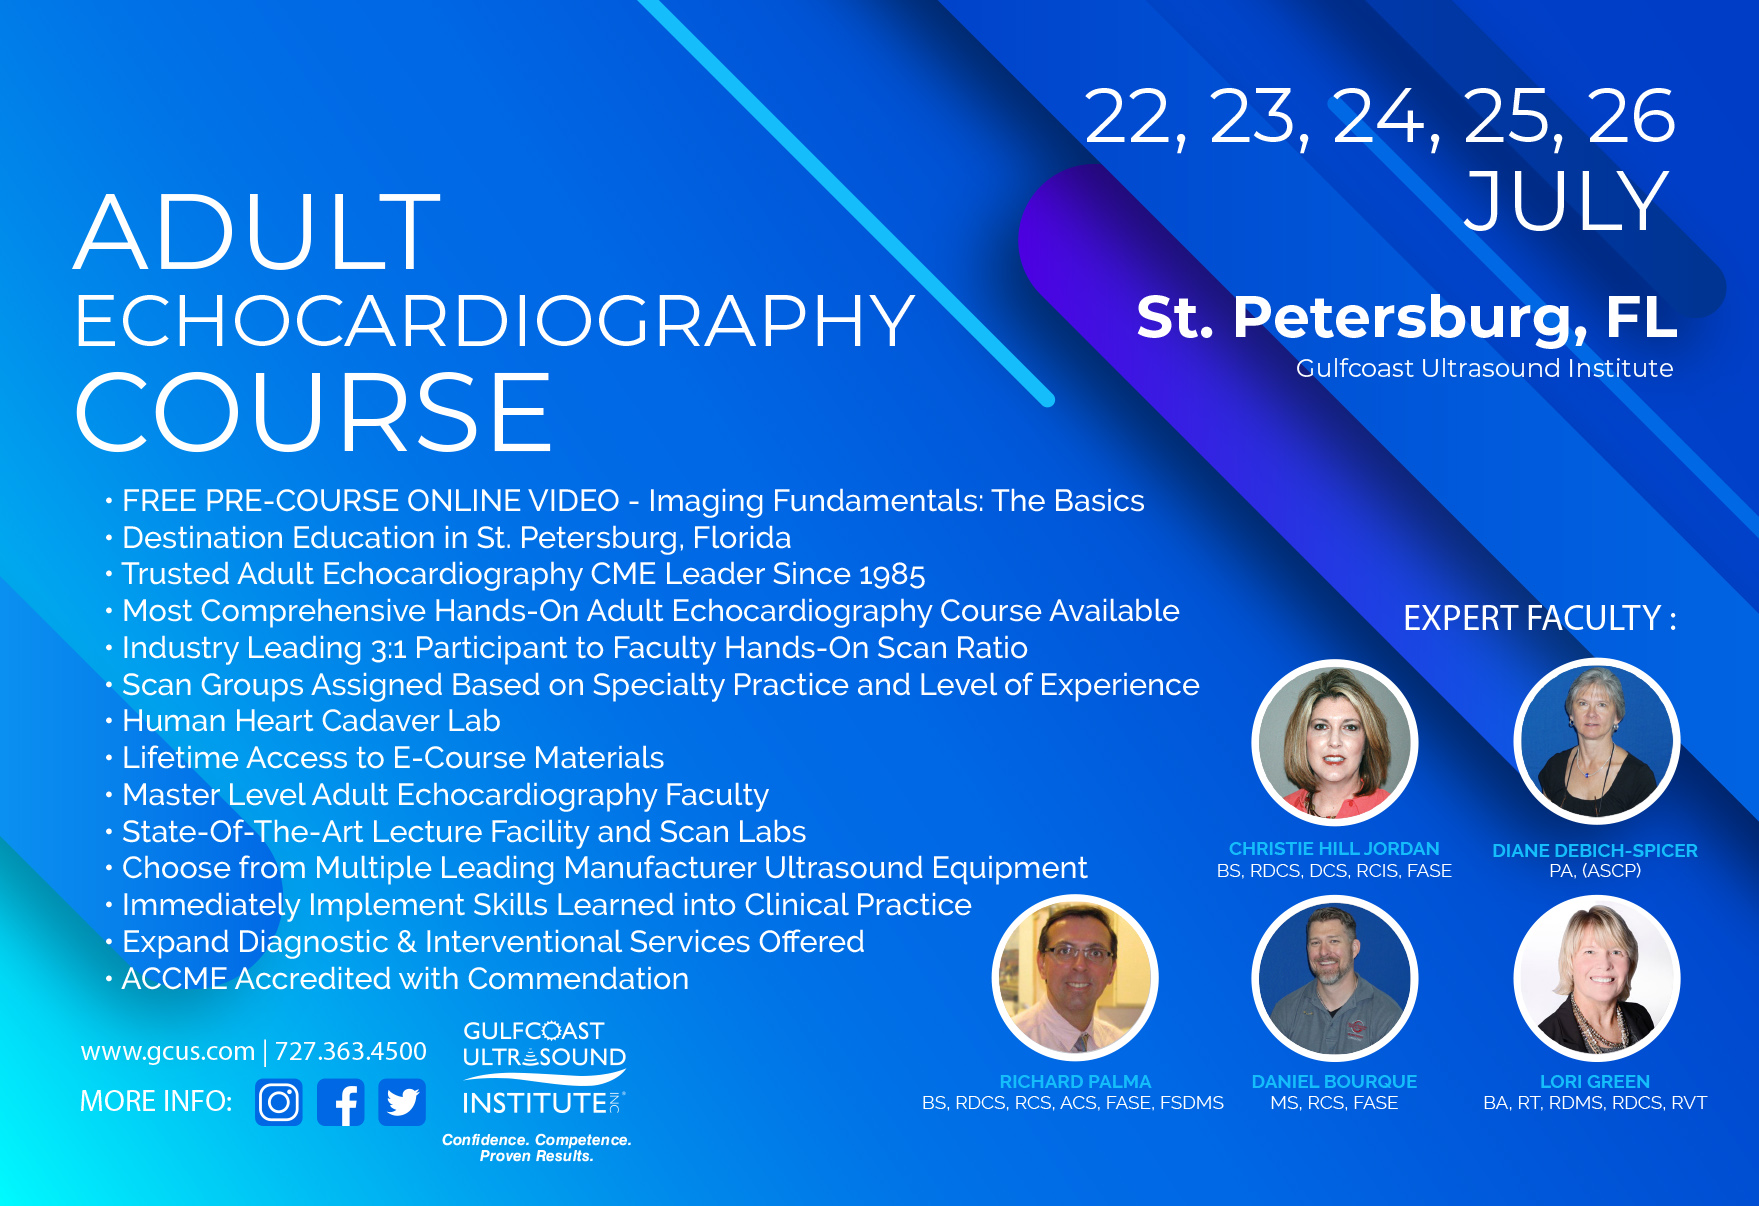 Hands On Adult Echocardiography Course